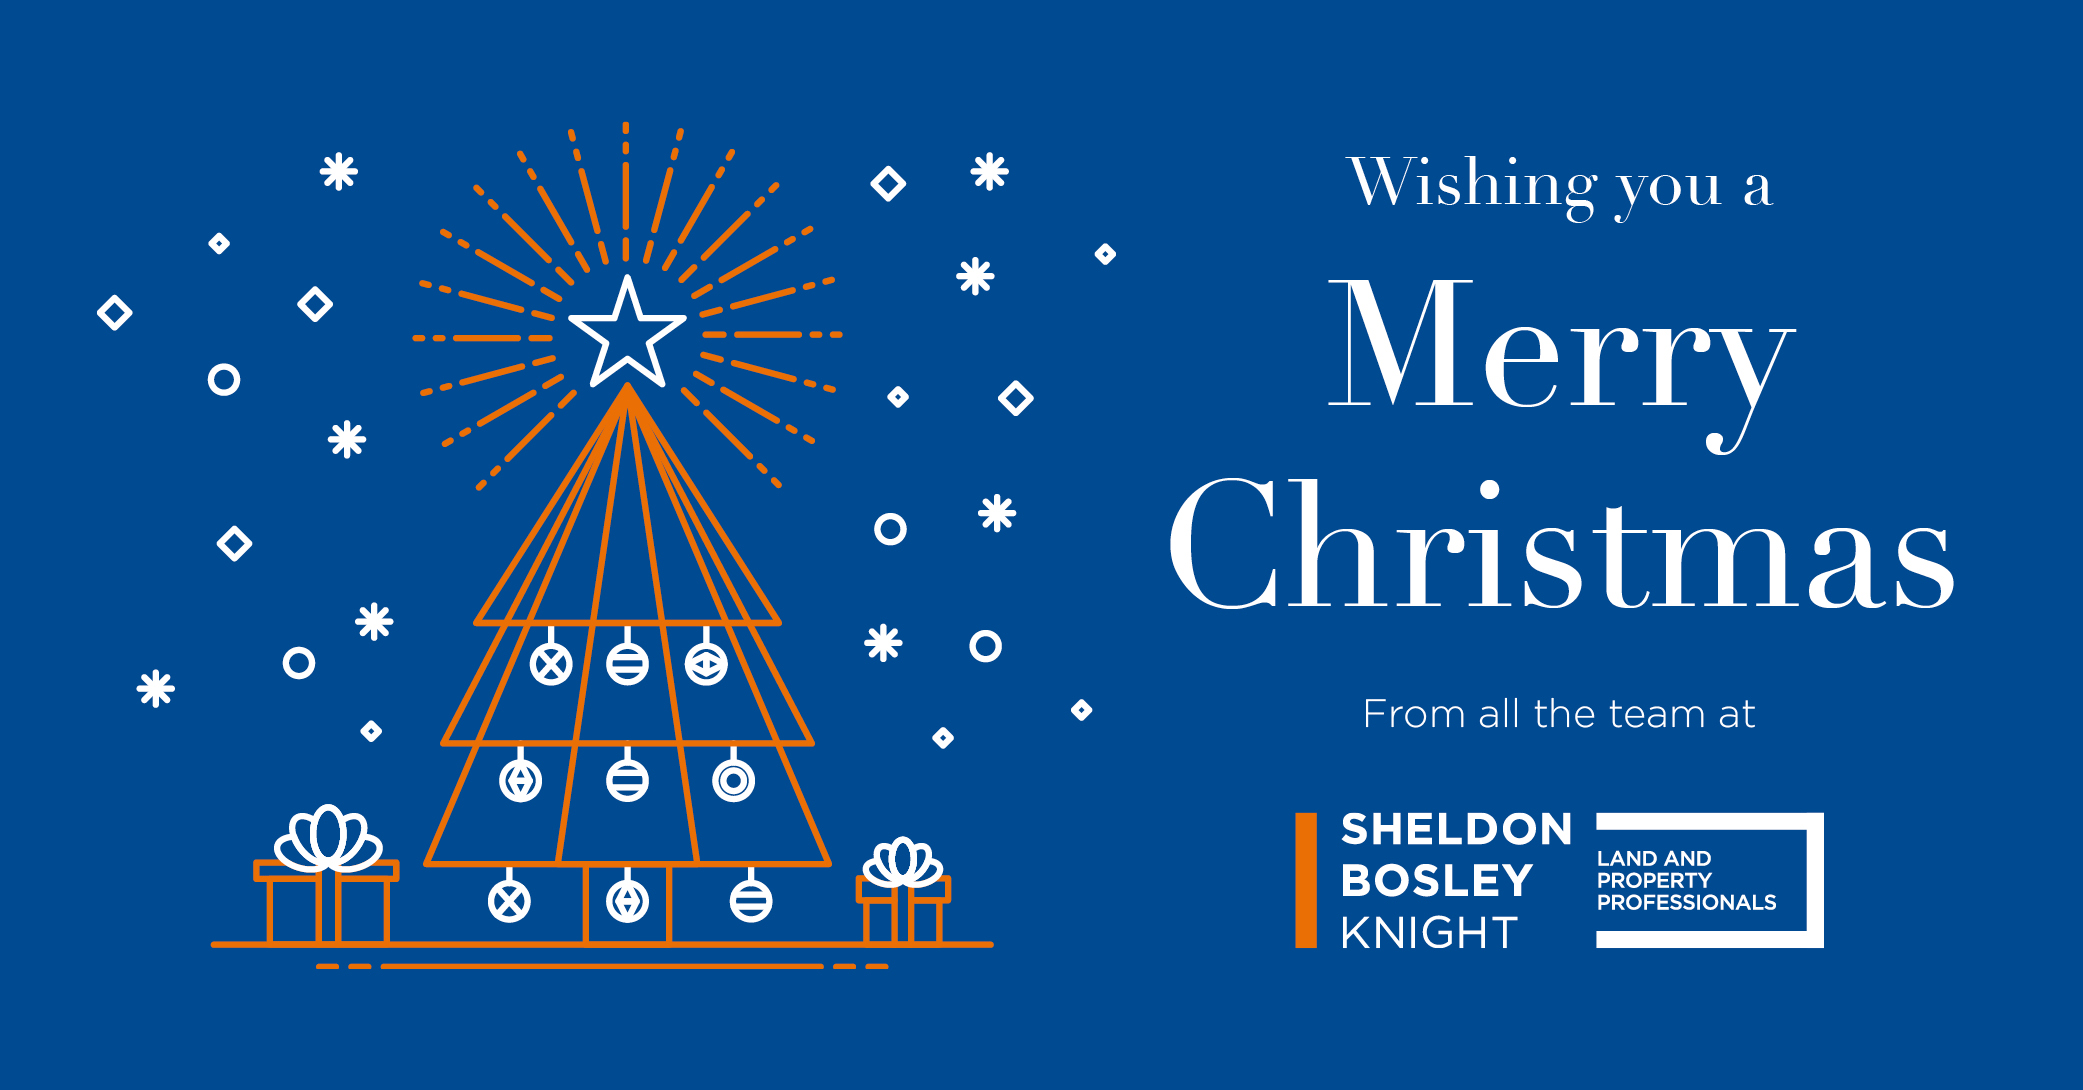 Merry Christmas from Sheldon Bosley Knight